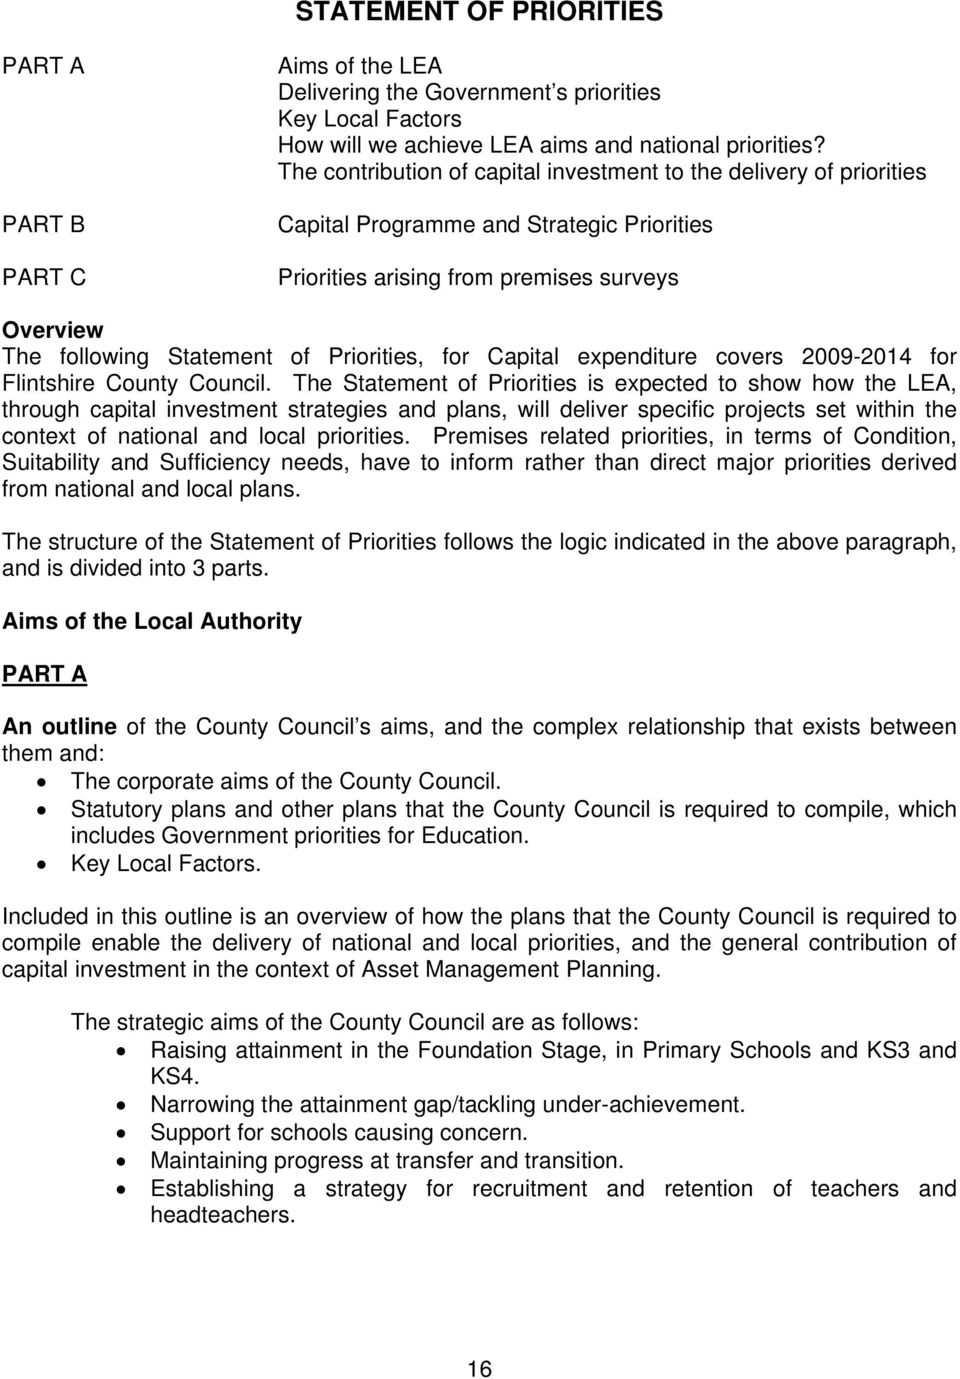 Priorities, for Capital expenditure covers 2009-2014 for Flintshire County Council.